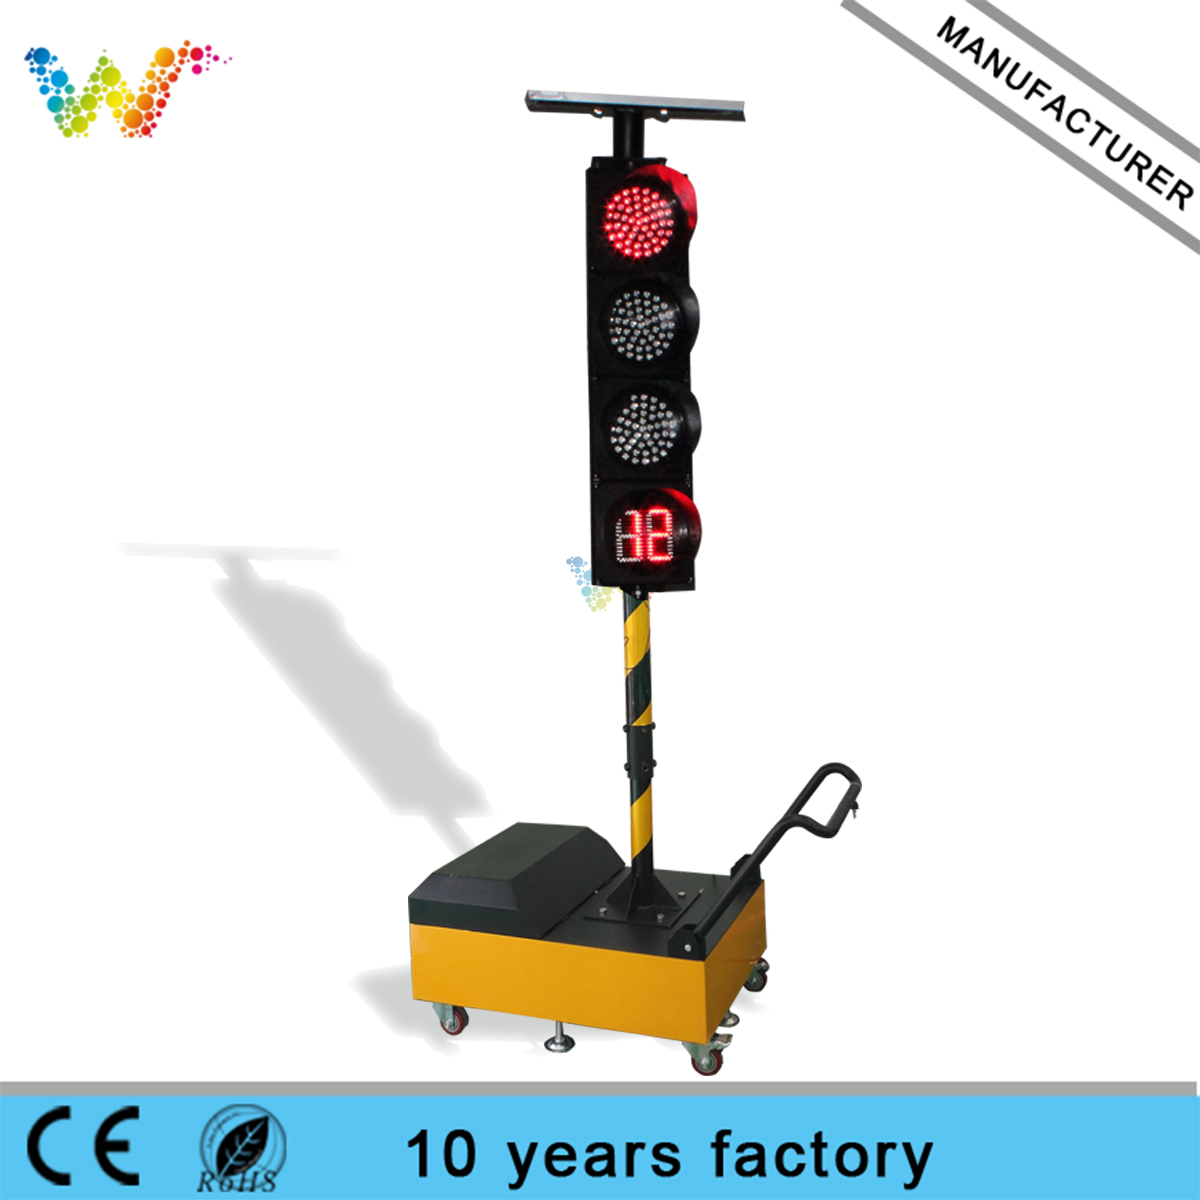 Trolley Remote Control 200mm LED Solar temporary traffic light